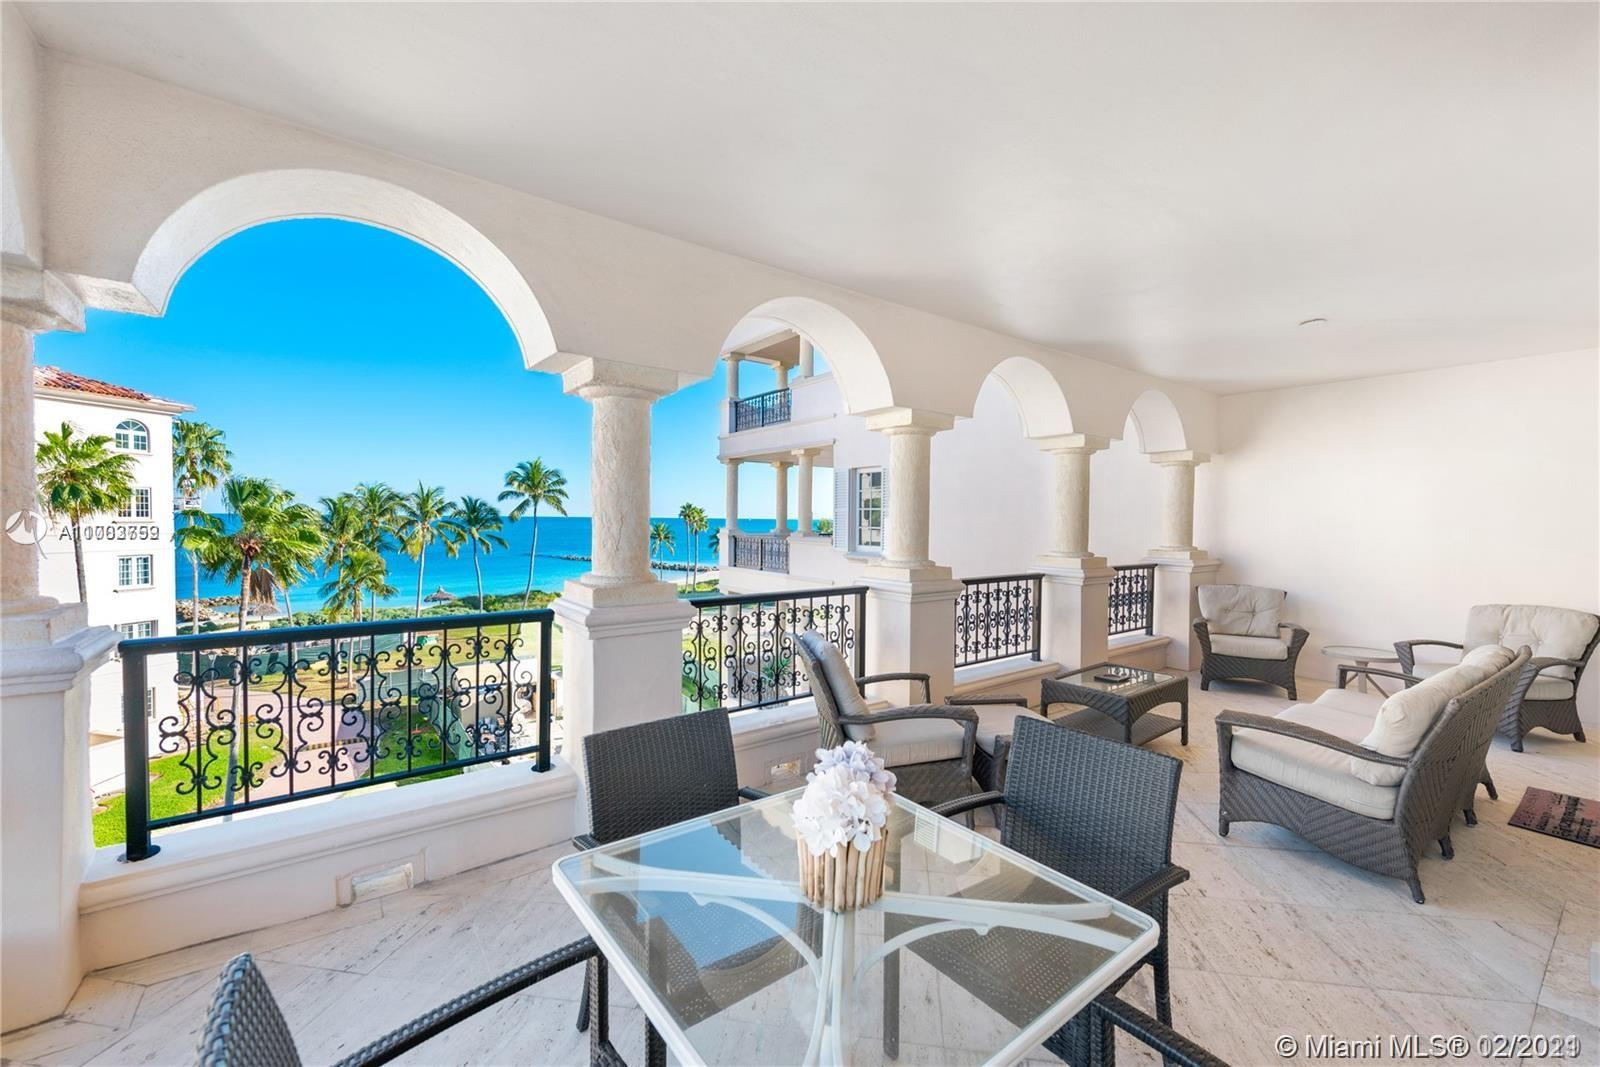 SPECTACULAR SEASIDE VILLAGE CONDO WITH OCEAN DIRECT AND MIAMI SKYLINE VIEWS. THIS MAGNIFICENT UNIT HAS BEEN COMPLETELY RENOVATED.  3 BEDROOMS, A LARGE DEN AND 3 BATHS, MARBLE FLOORS, PRIVATE OPEN EXPANSIVE TERRACE 550 sqft